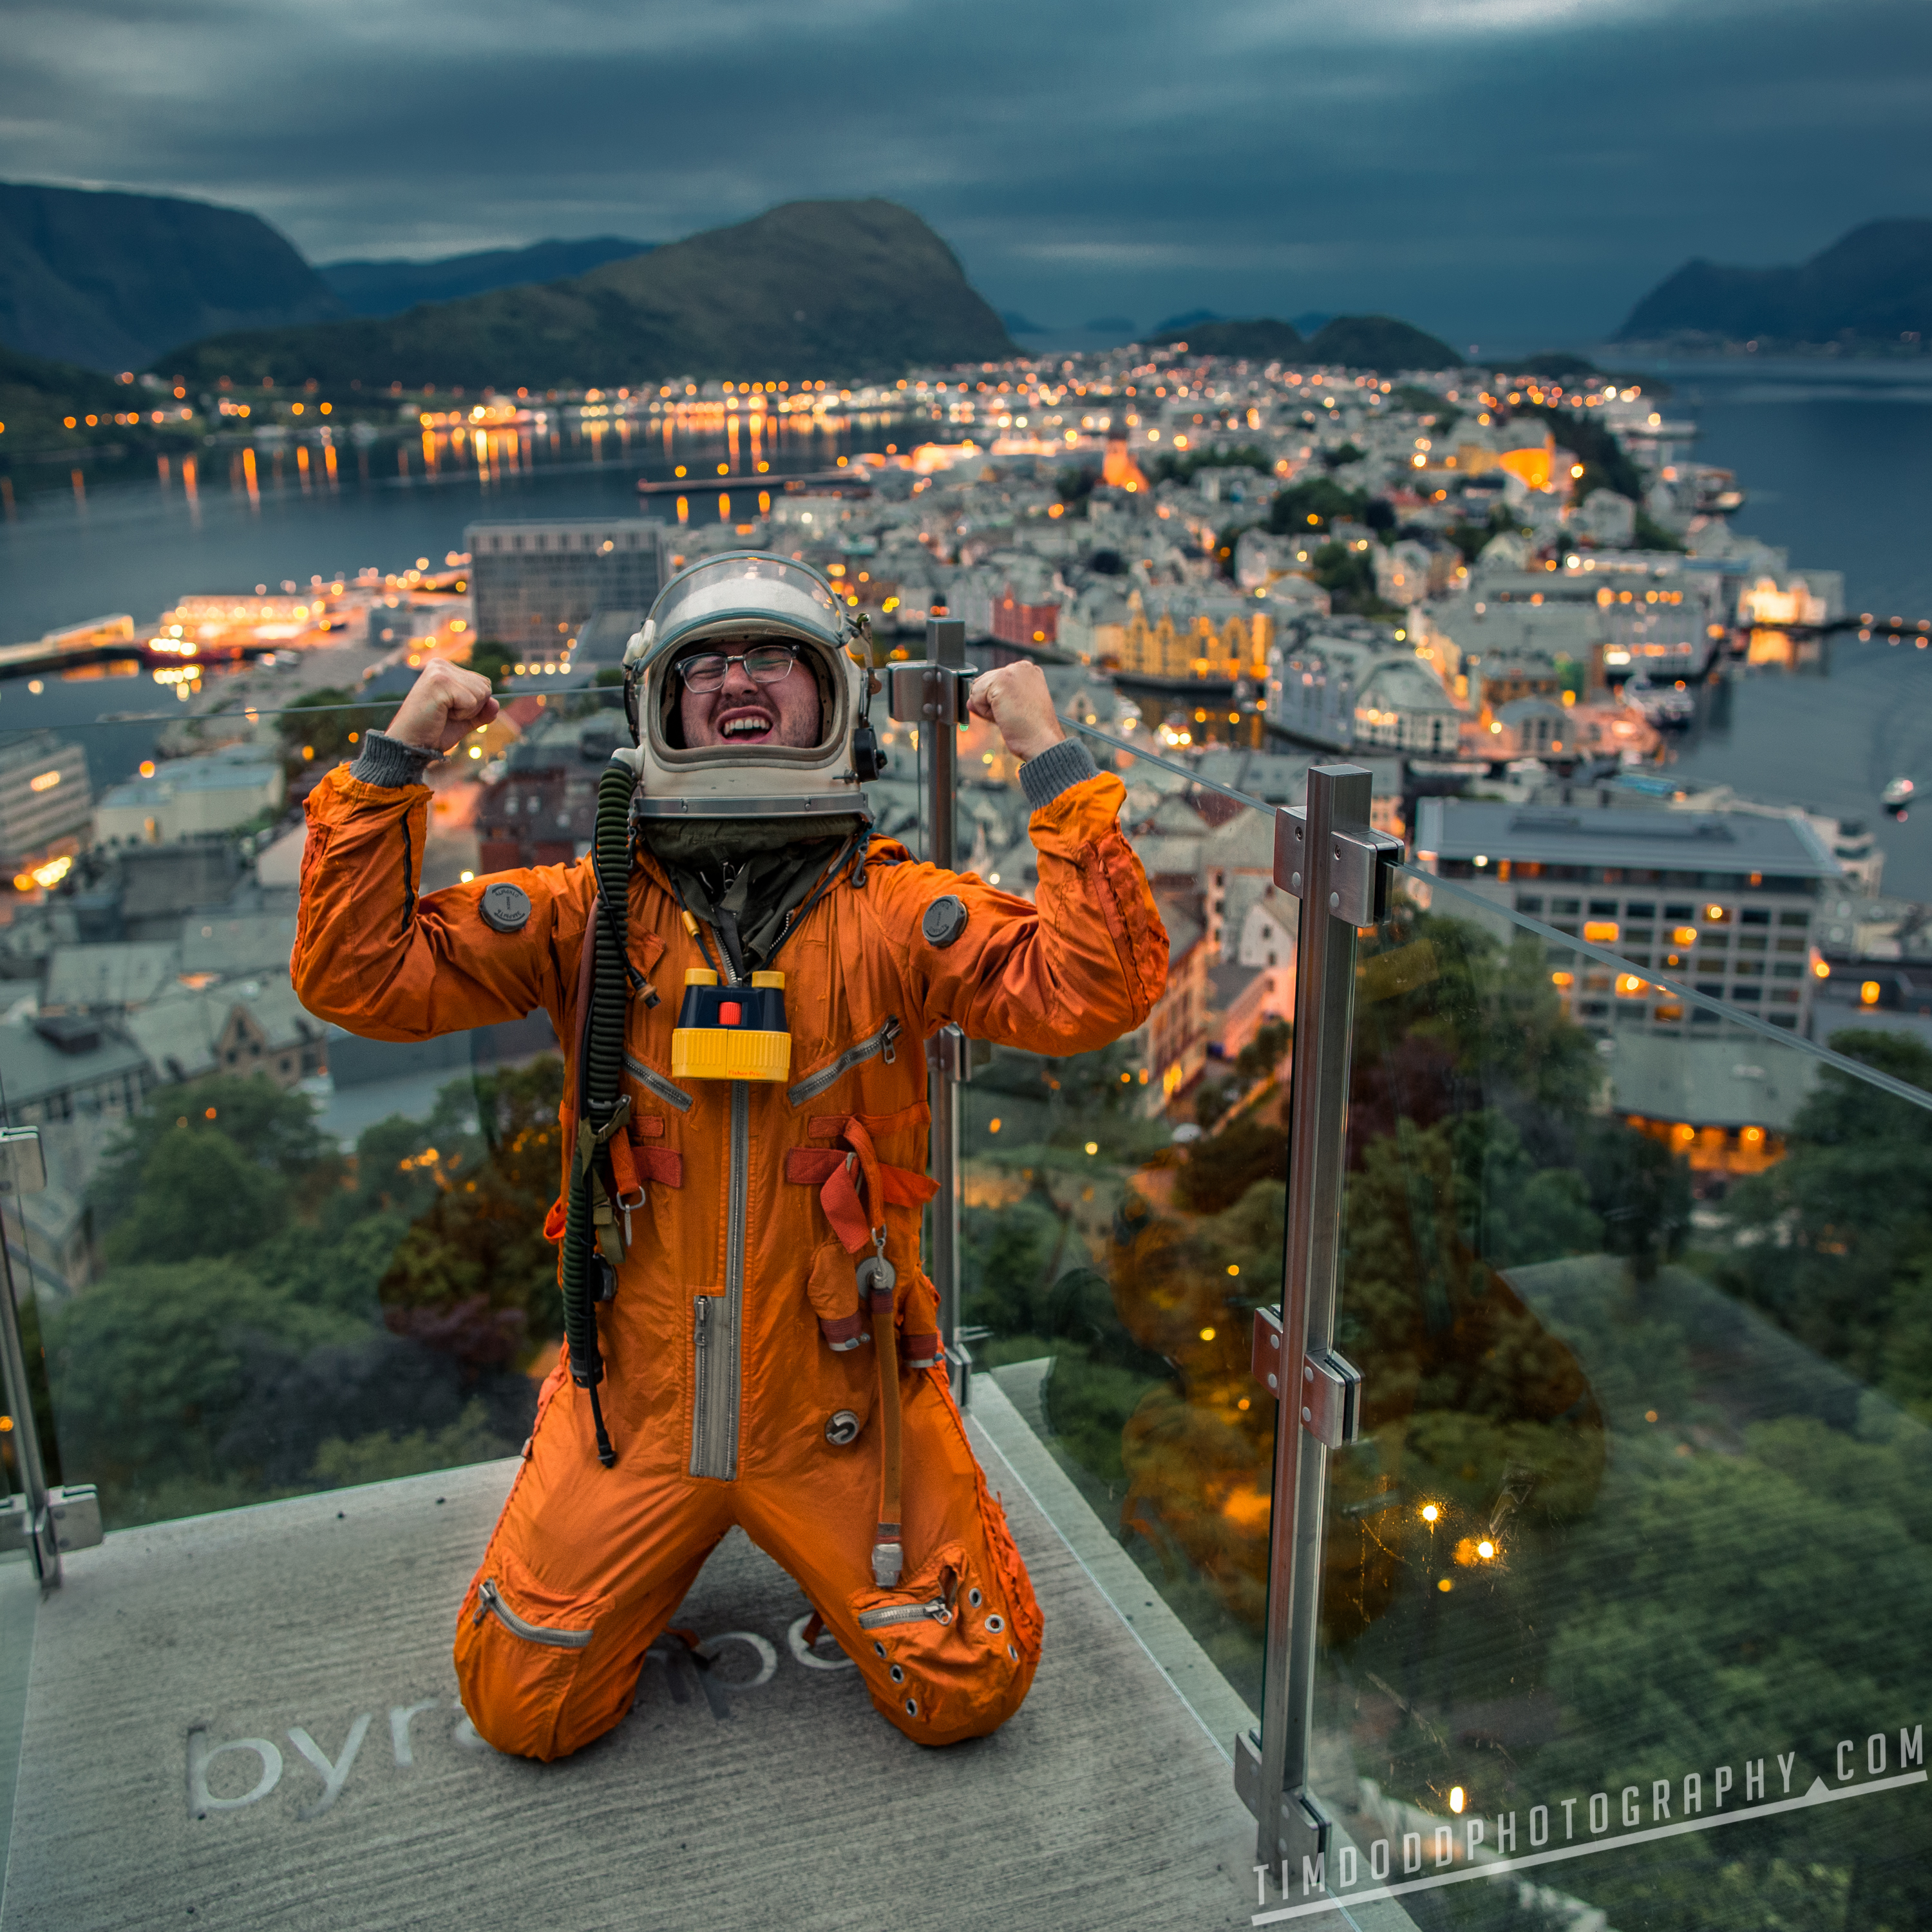 """Alesund Fjellstua Utsiktspunkt Astronaut Space Suit Norway mirror lake reflection boat beautiful mountains 60°47'31"""" N 6°34'28"""" E 1-1000 sec at f - 2.0 ISO 100 Canon EOS 5D Mark III Sigma 50mm F1.4 Art by Tim Dodd Photography"""